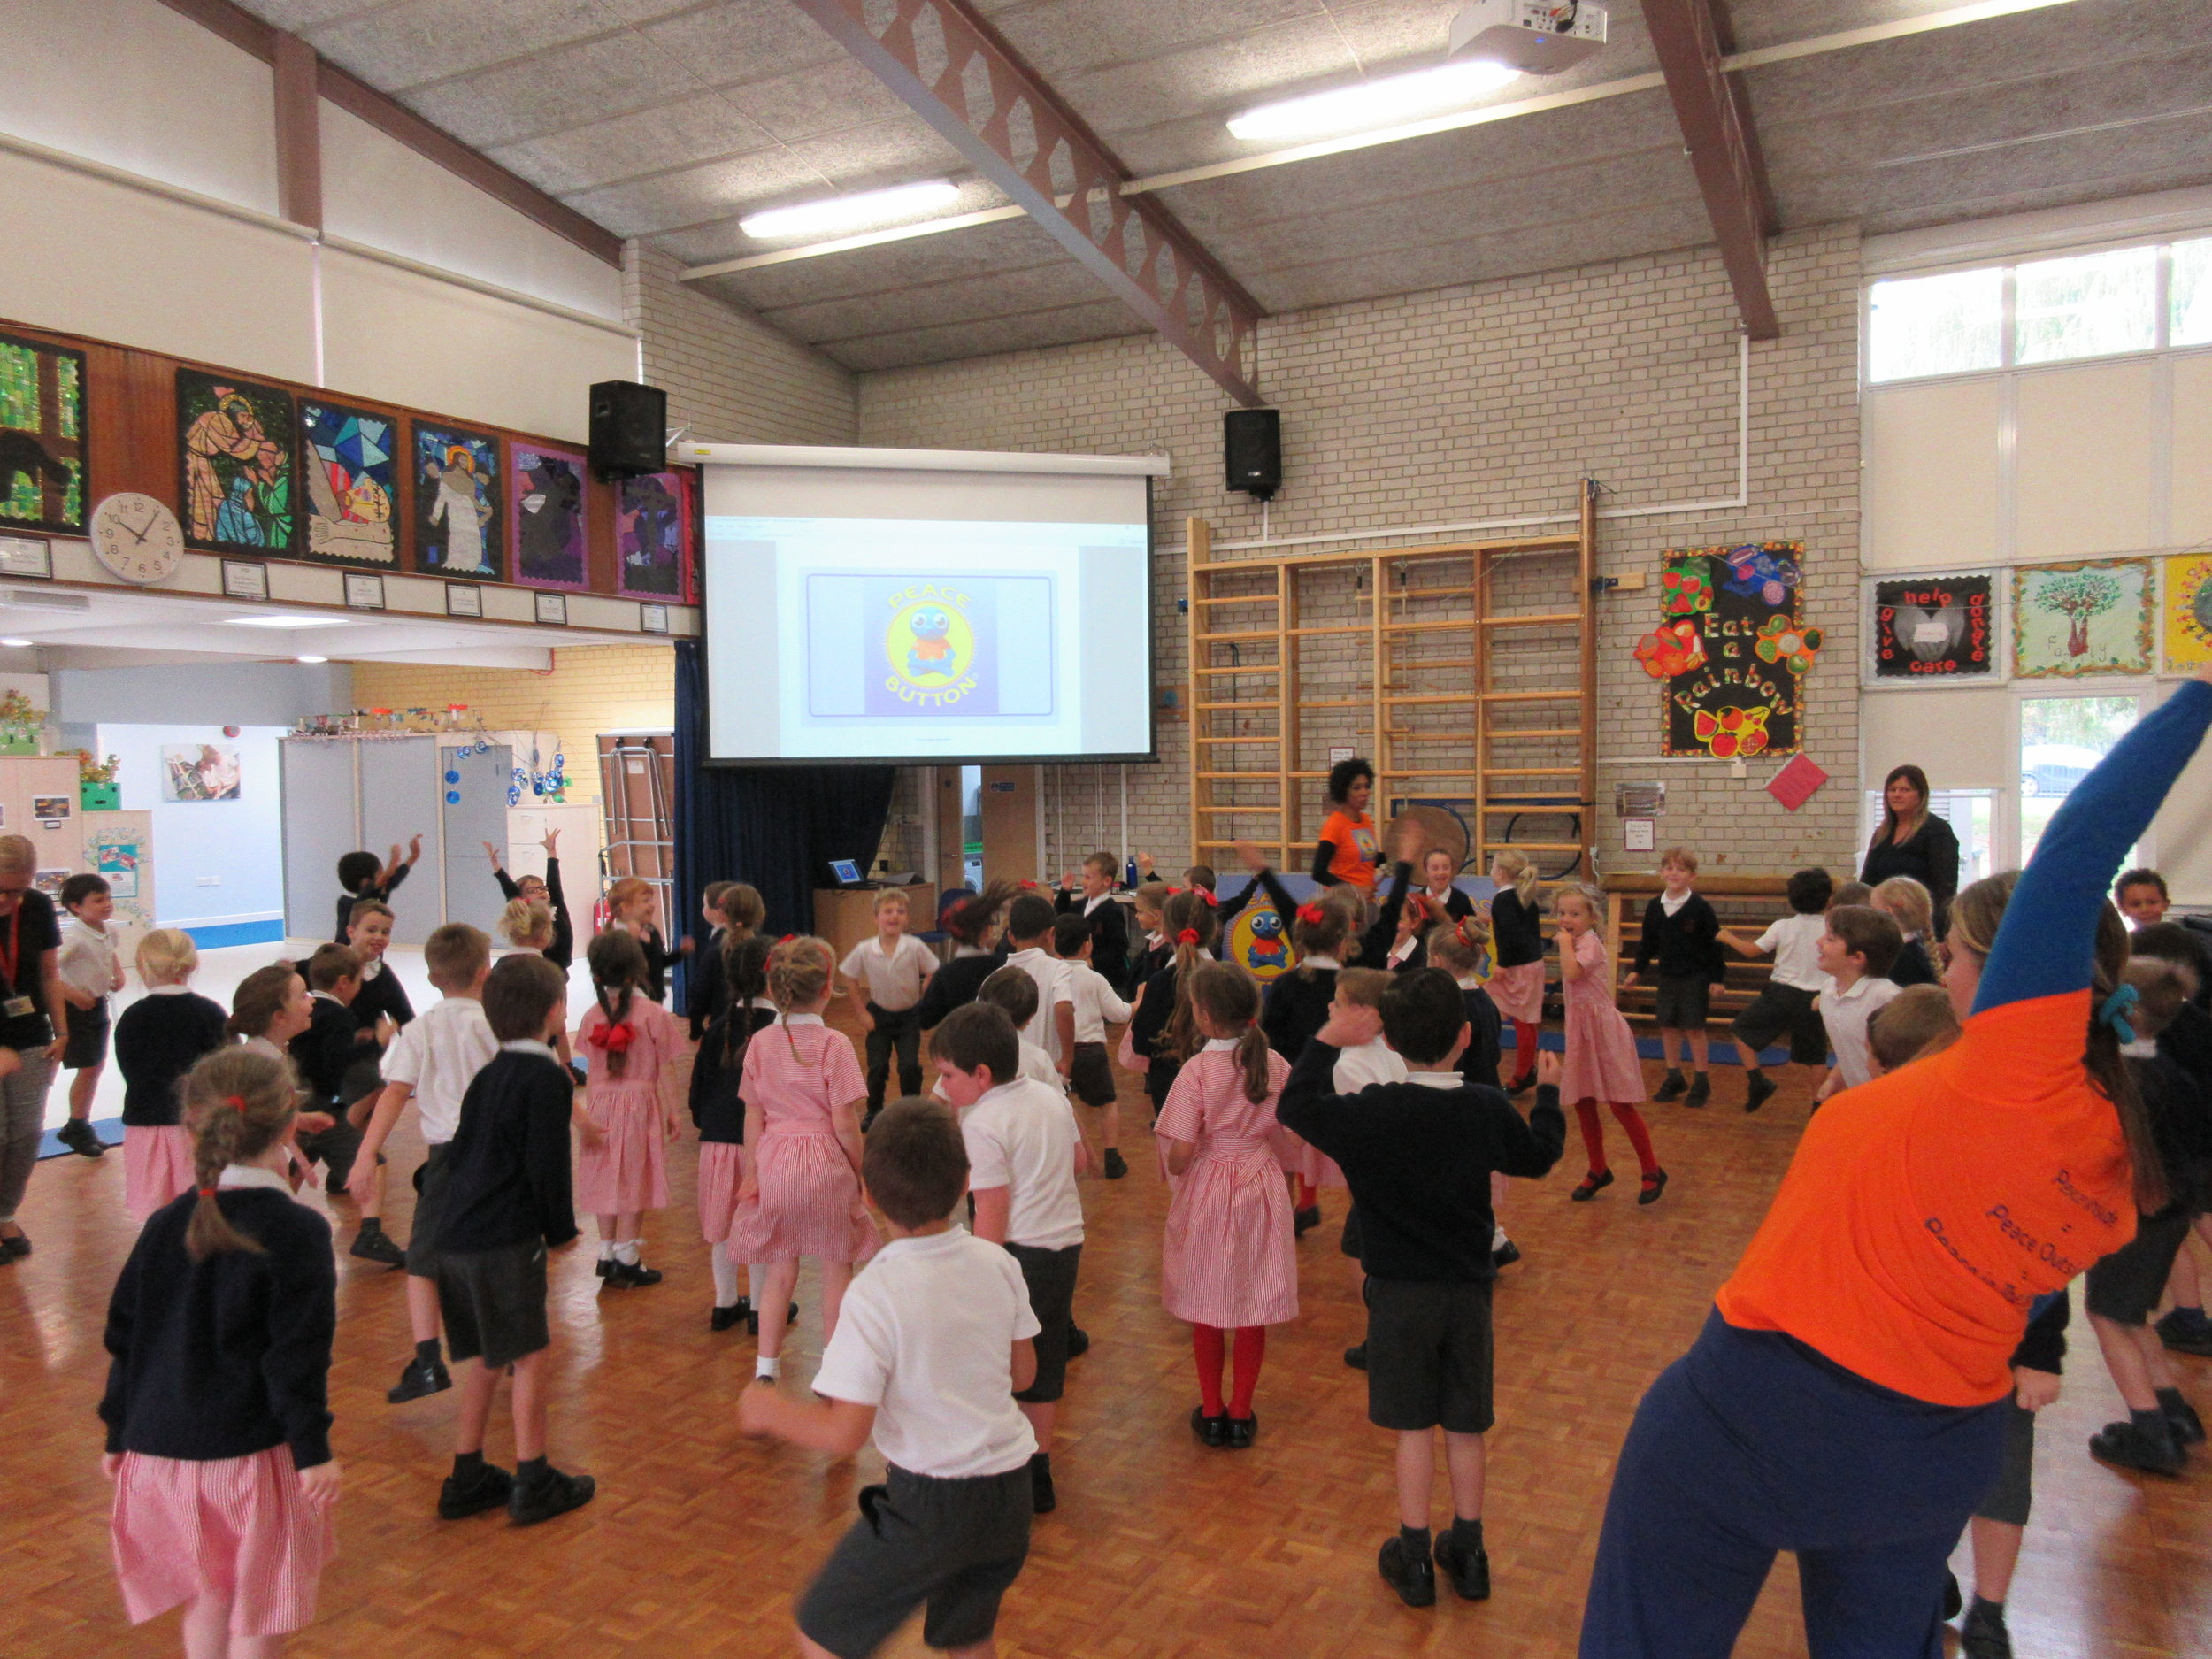 Mindfulness via movement and song